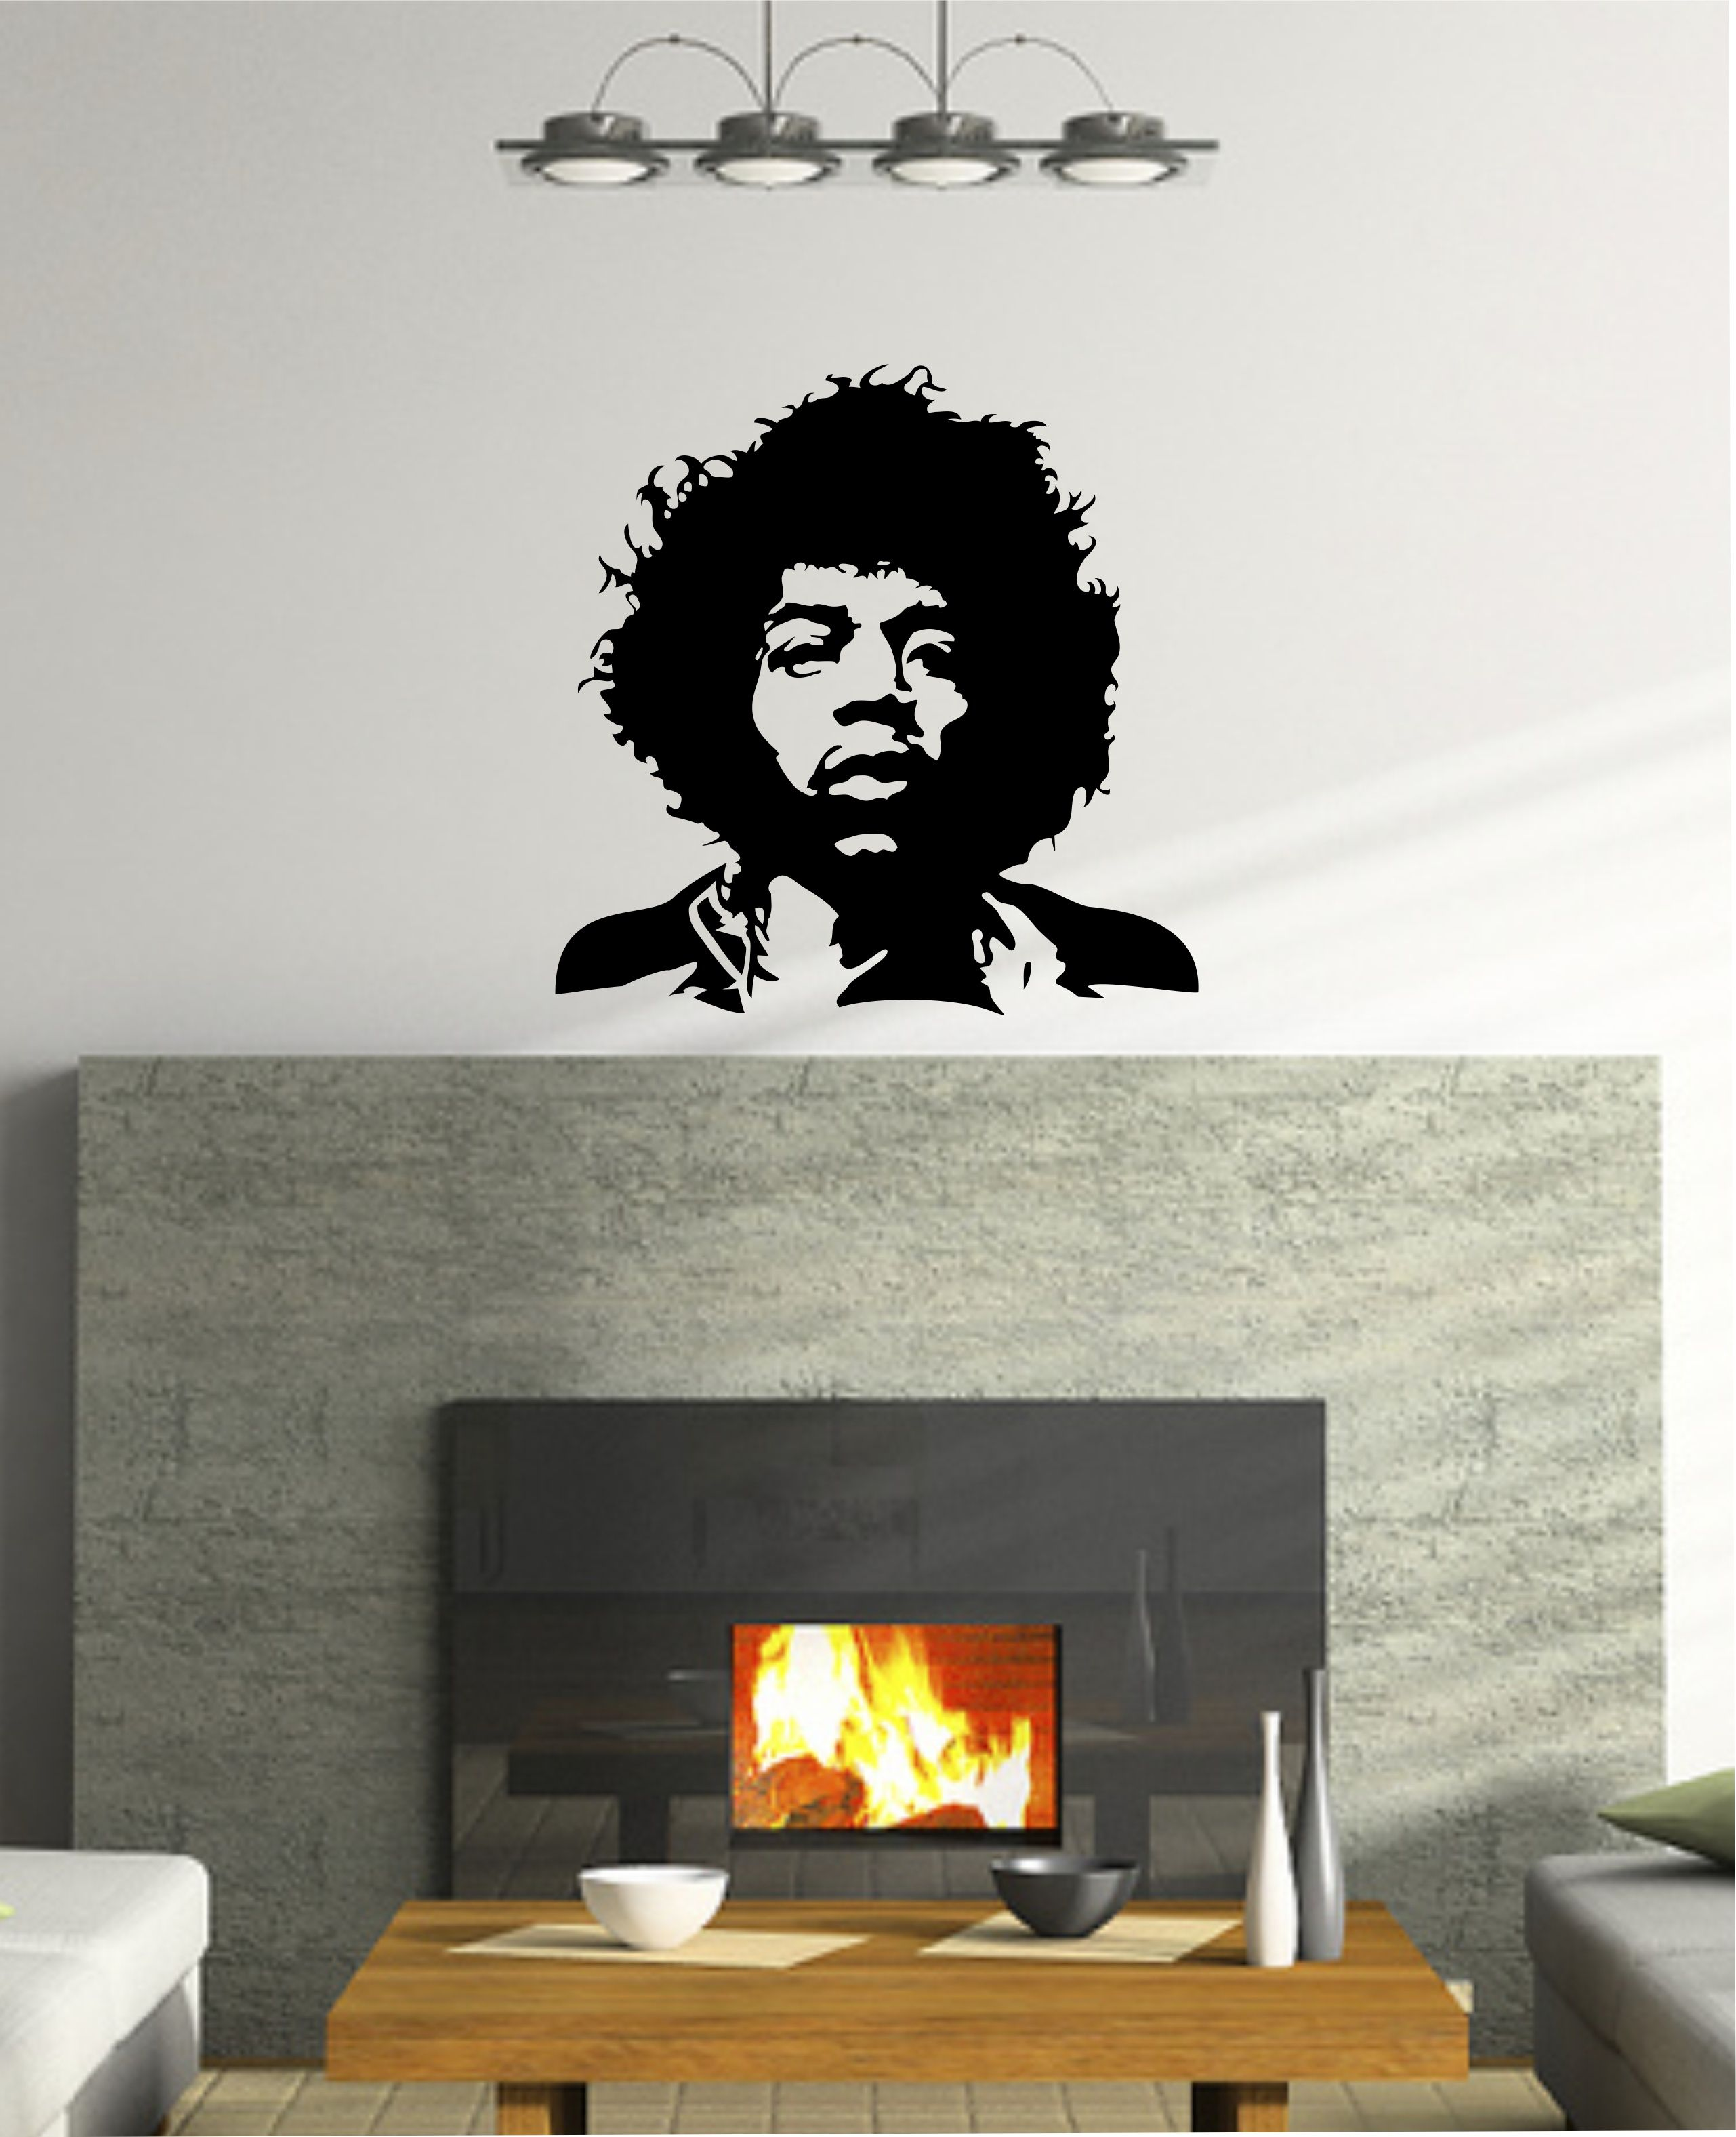 Jimi hendrix vinyl wall decal sticker large removable vinyl jimi hendrix vinyl wall decal sticker large removable vinyl mural art decor from wallcrafters on amipublicfo Image collections